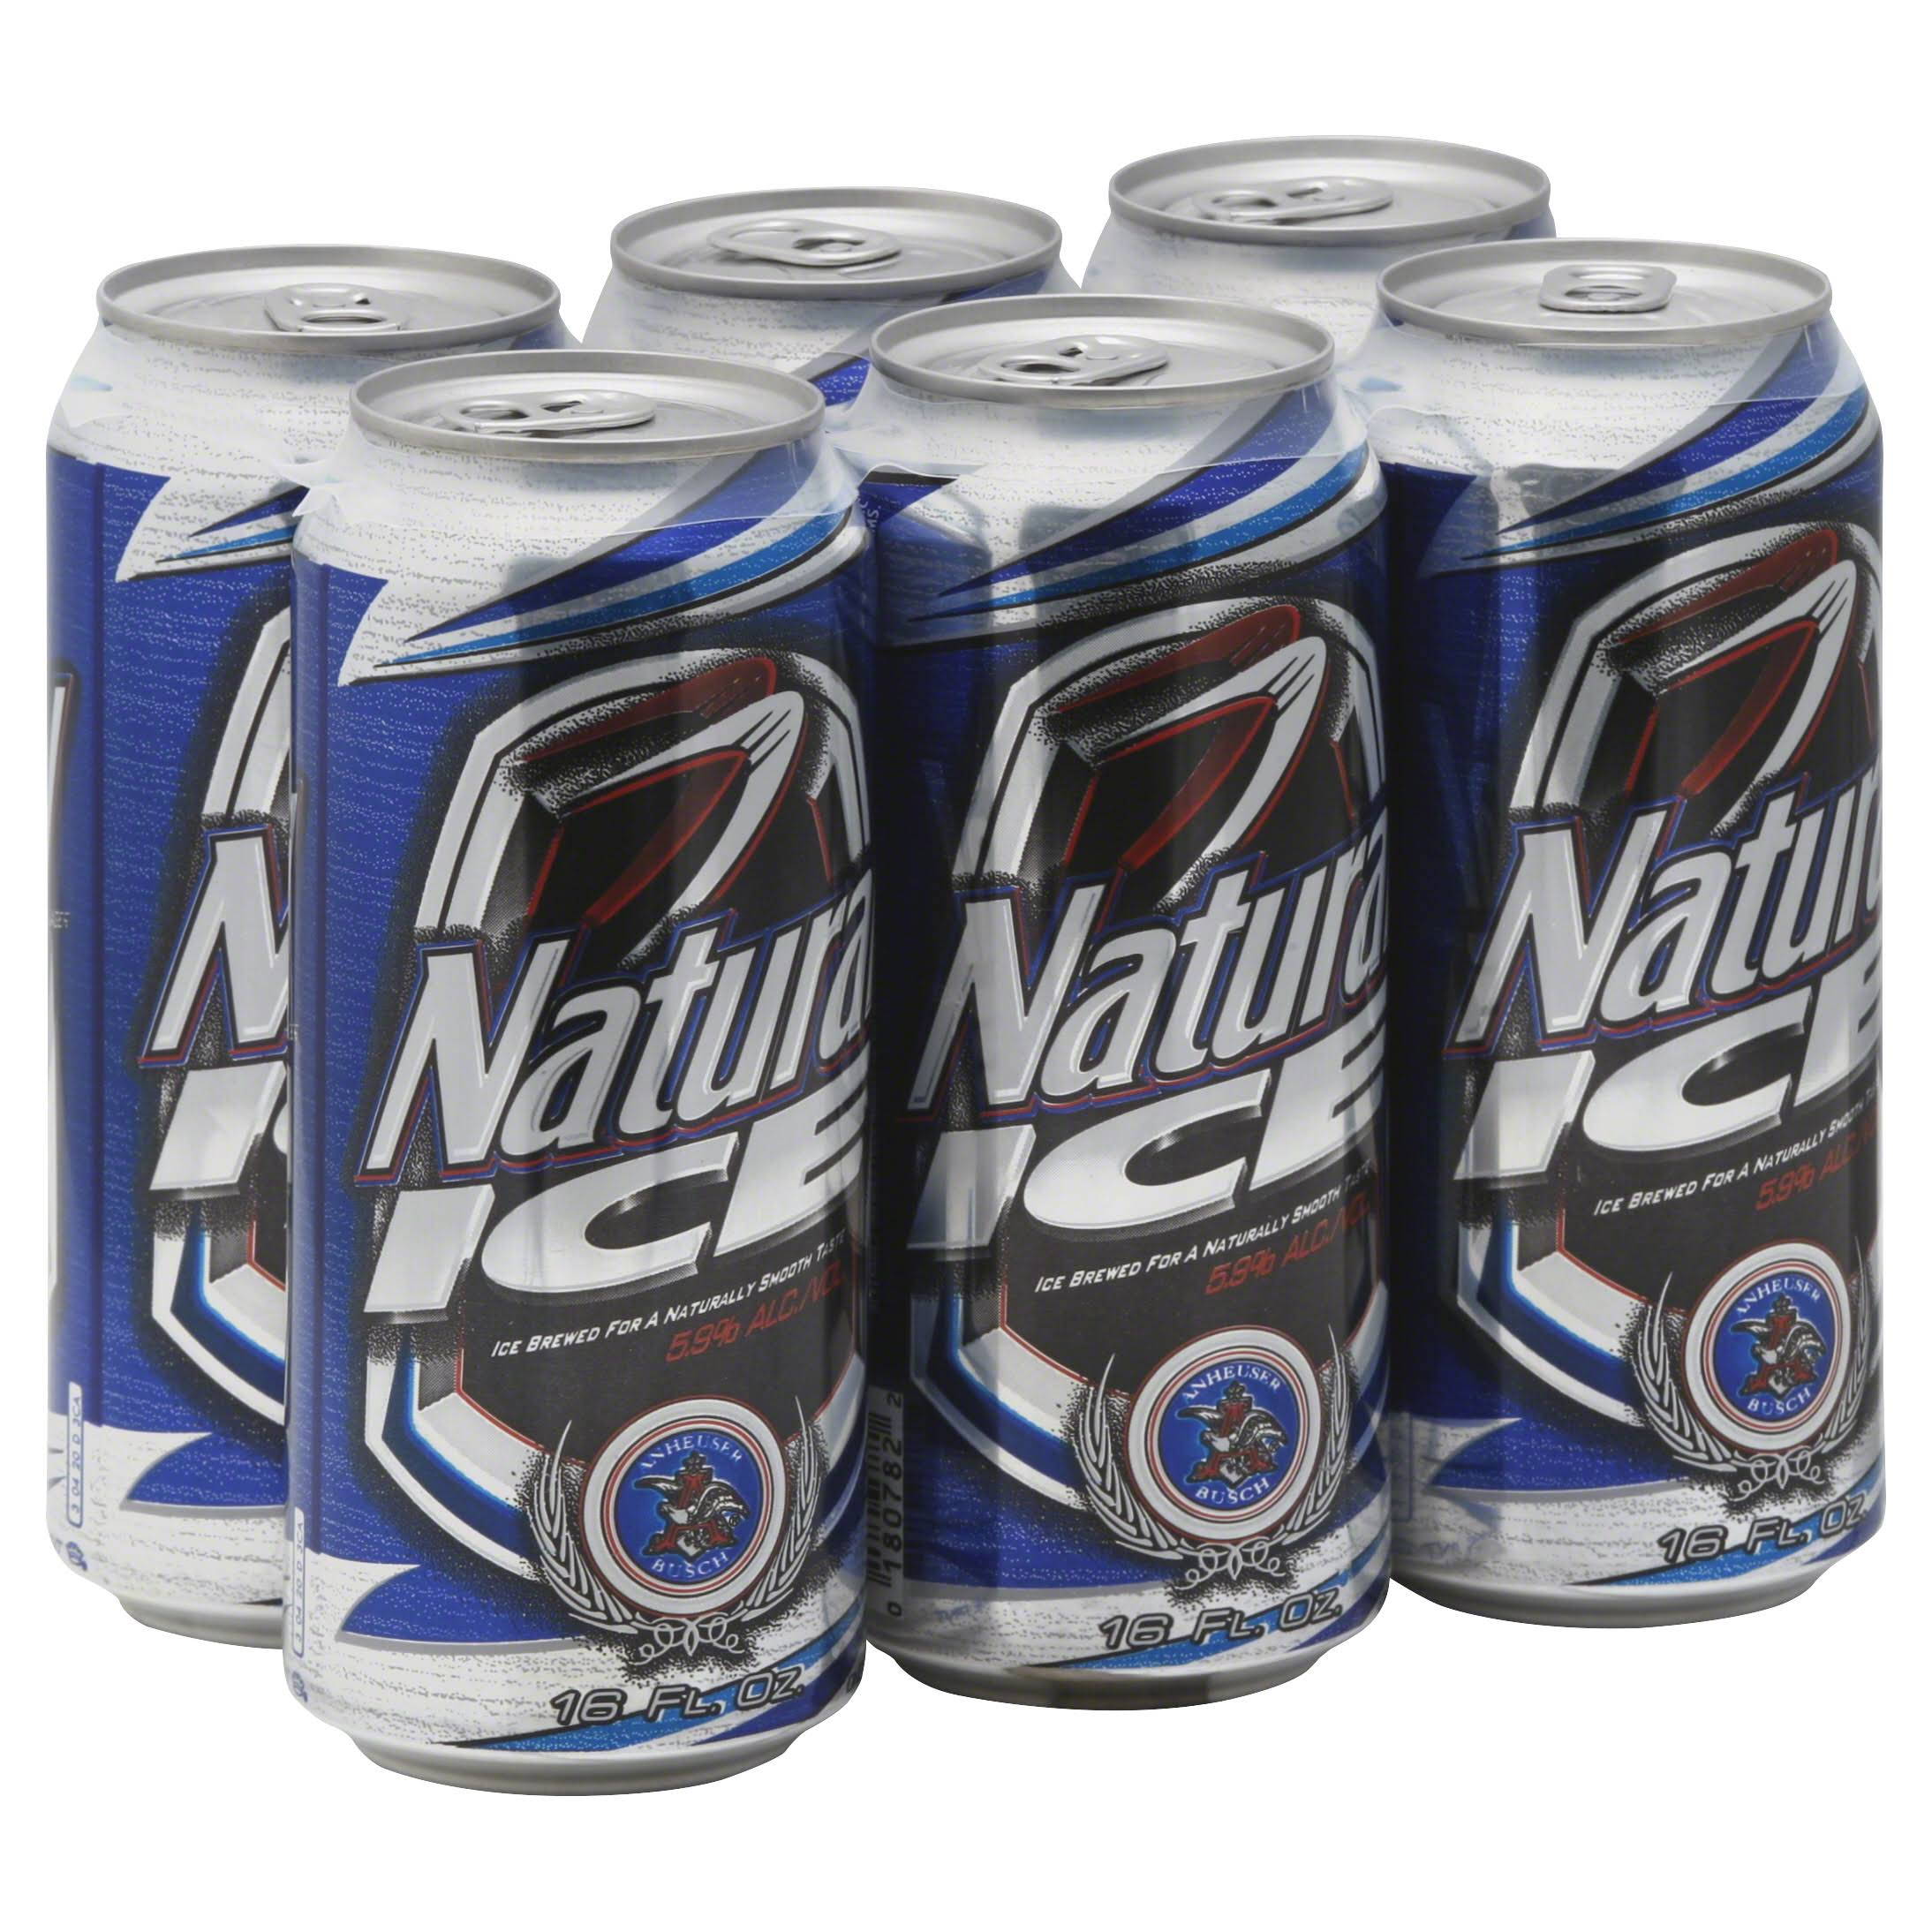 Natural Ice Lager Beer - x6